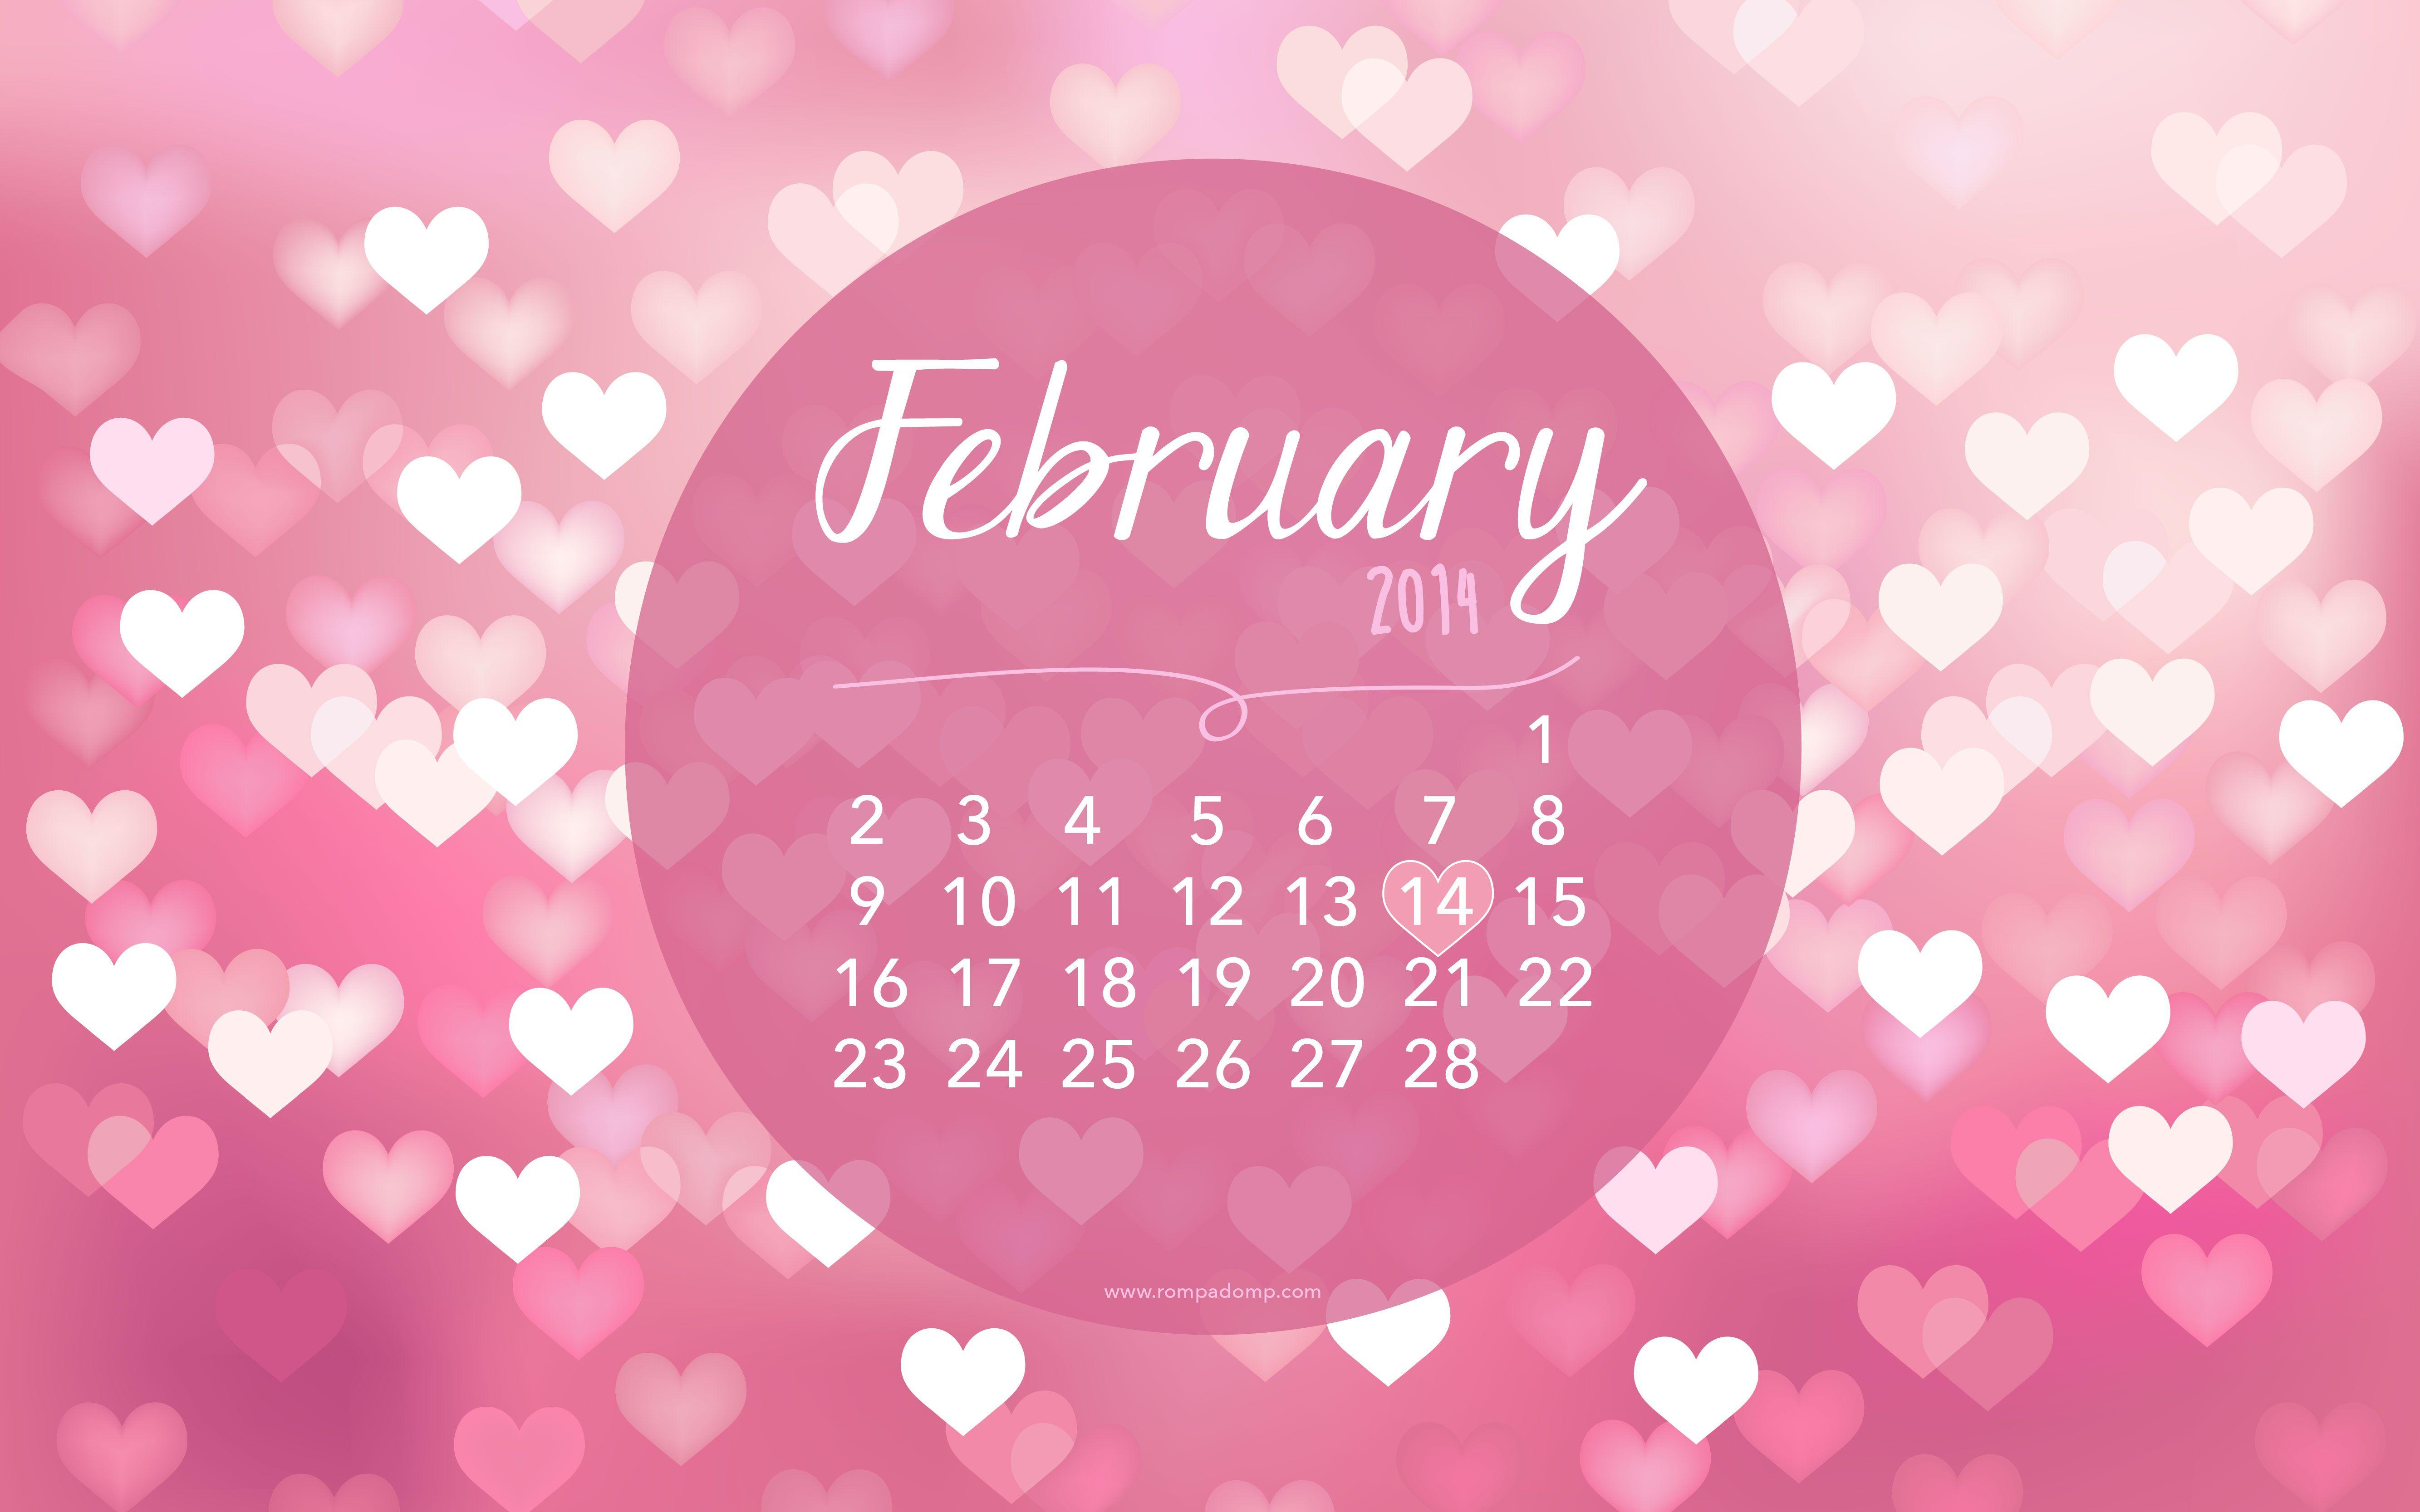 February Calendar Wallpaper Hd : February wallpapers wallpaper cave